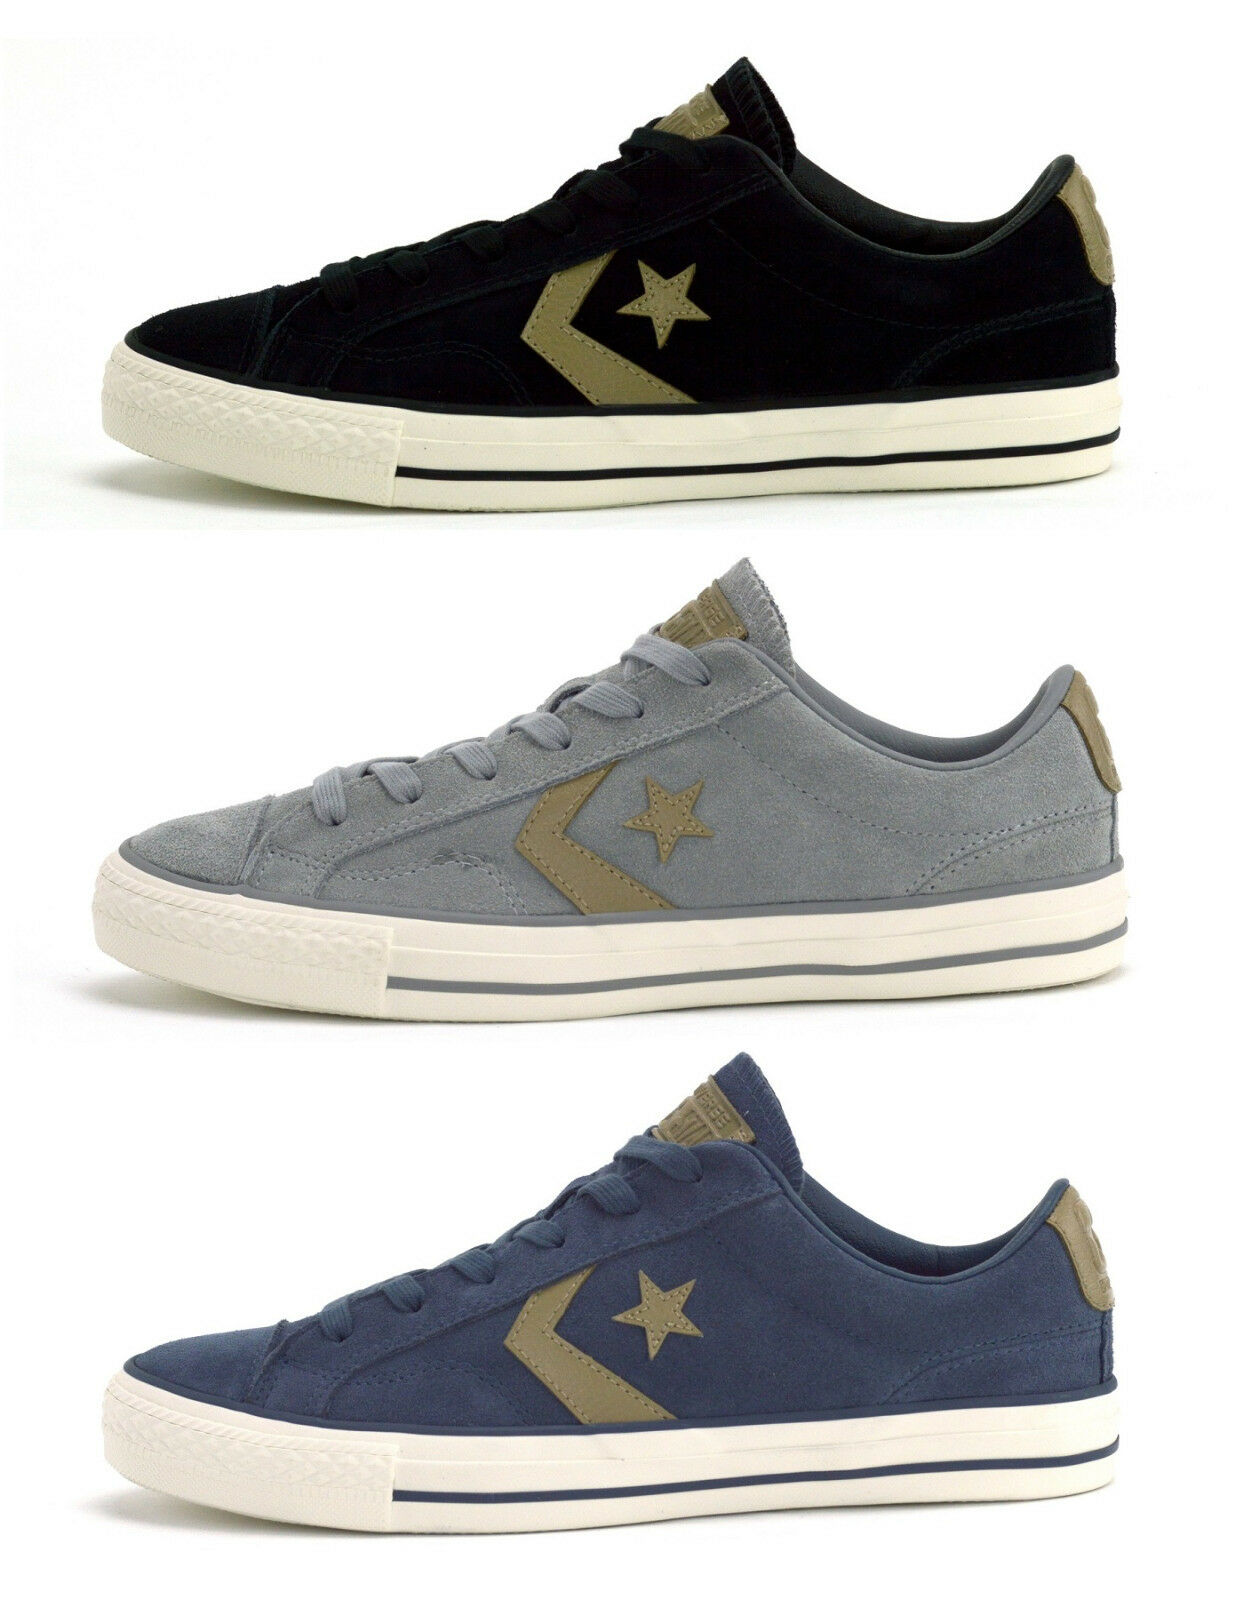 CONVERSE STAR PLAYER SUEDE OX - Hombre SNEAKERS -  BRAND CHOICE OF COLOURS - BRAND  NEW 175b15